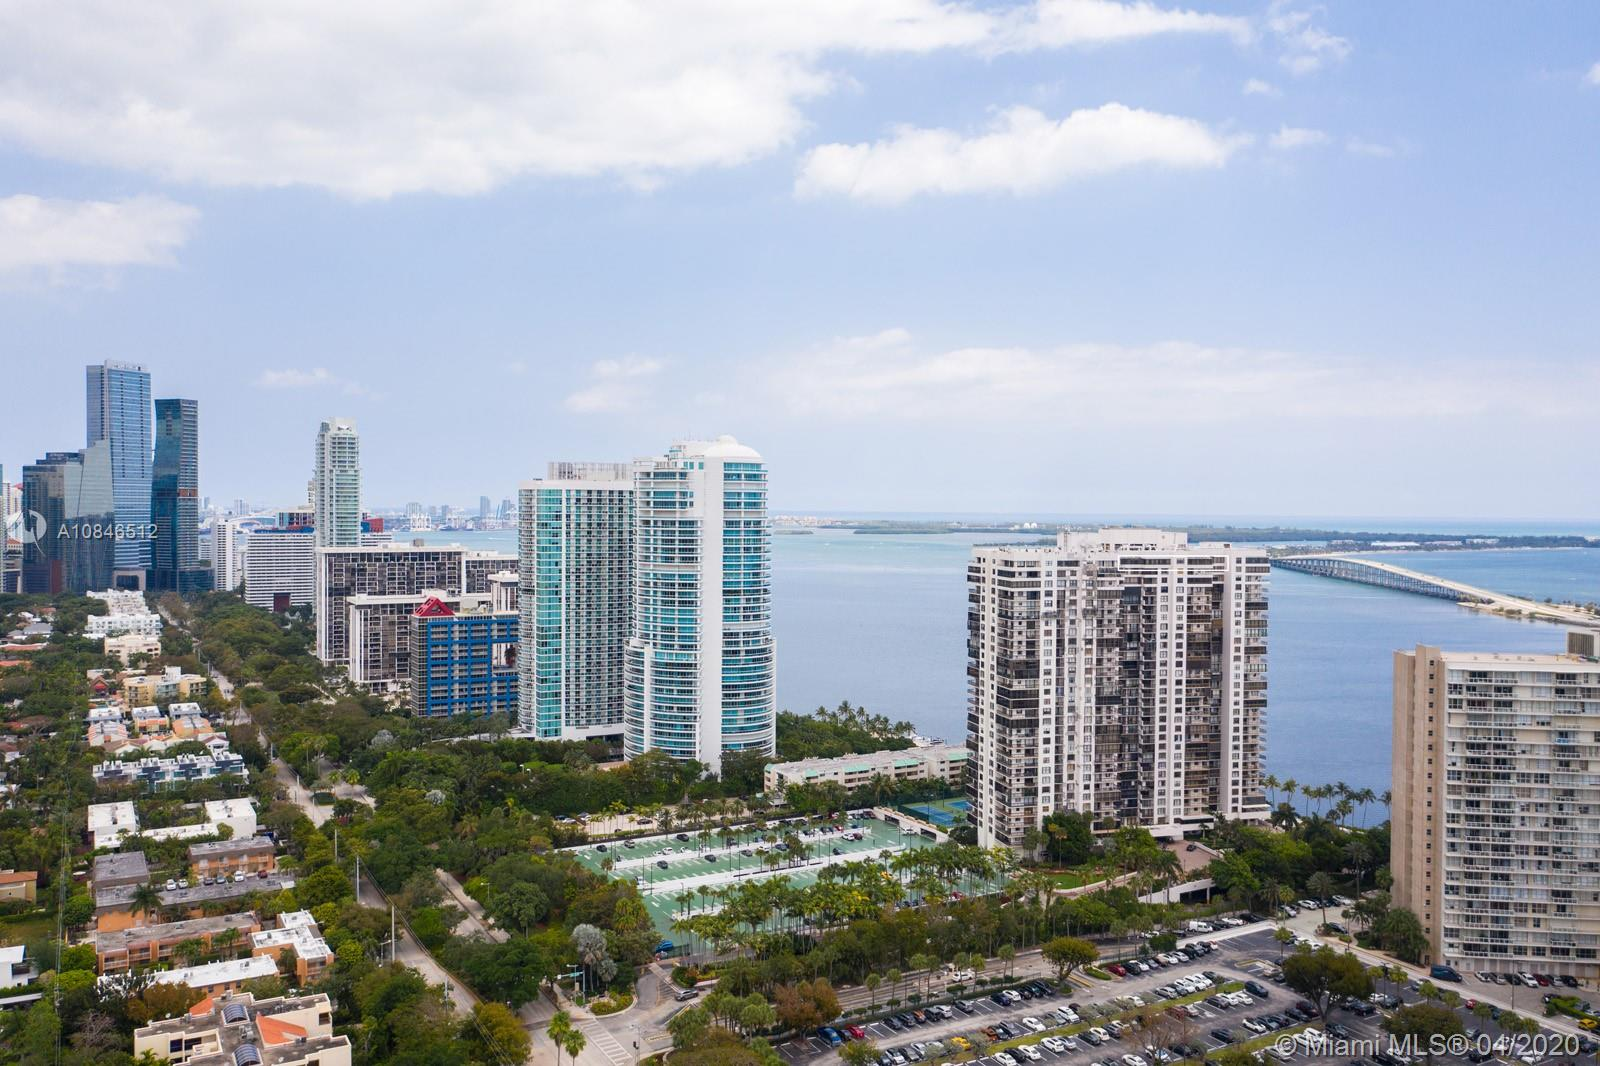 Completely remodeled 4 bedrooms, 3.5 bathrooms waterfront apartment at Brickell Bay Club. With over 4,000 sq.ft.  this beautiful unit's features include marble floors throughout, high ceilings, formal dining room, eat in kitchen. Beautiful views of Biscayne Bay. Bright and airy, this spacious unit is perfect for entertaining.